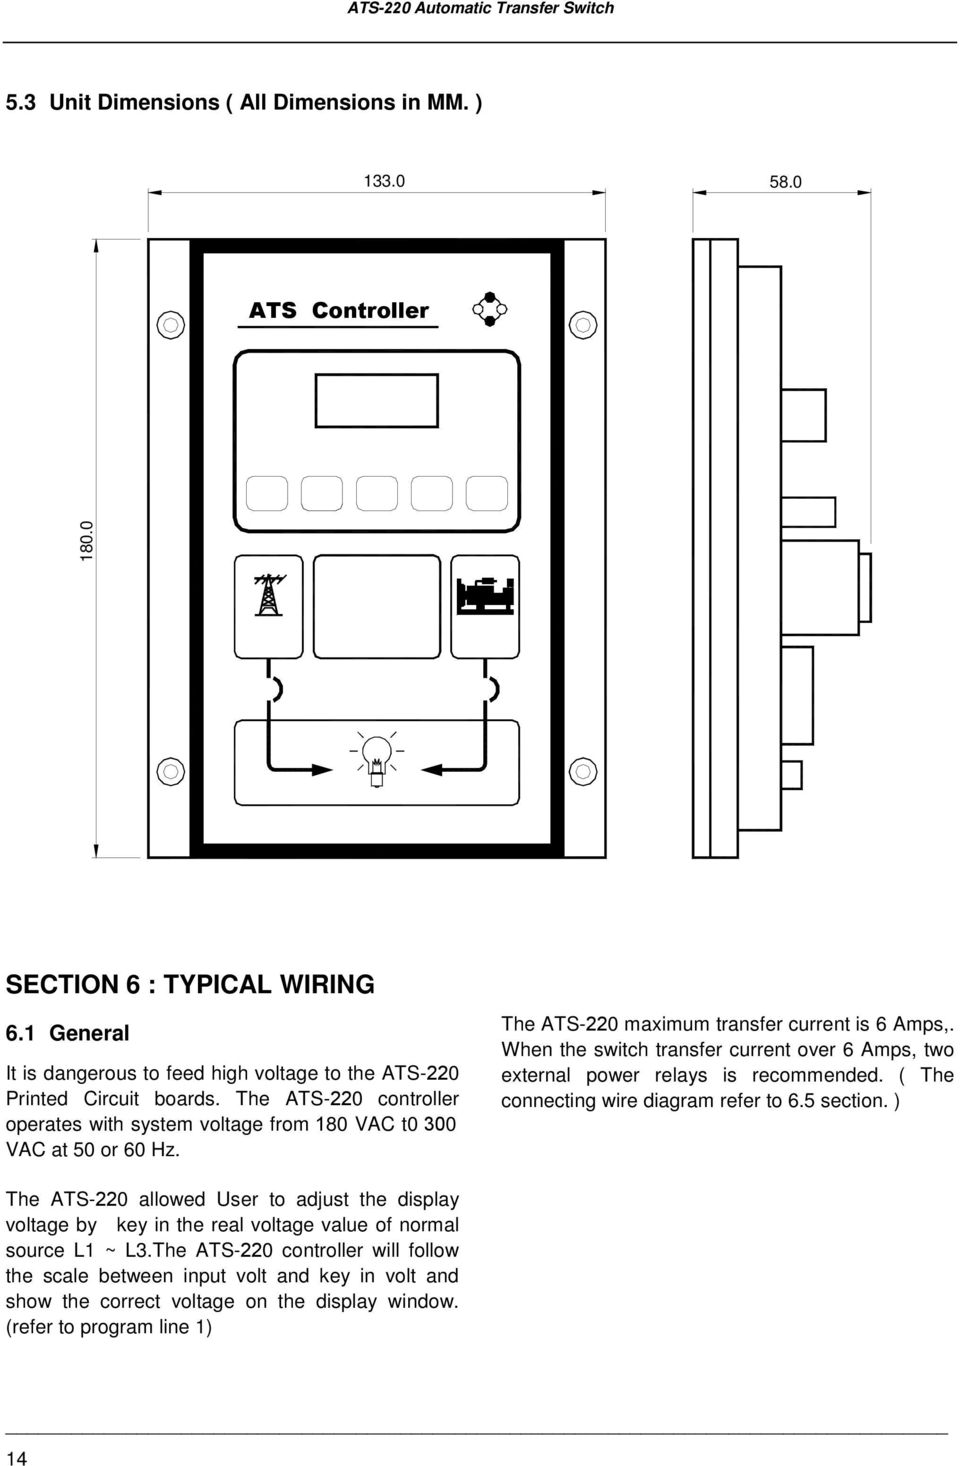 hight resolution of the ats 220 maximum transfer current is 6 amps when the switch transfer